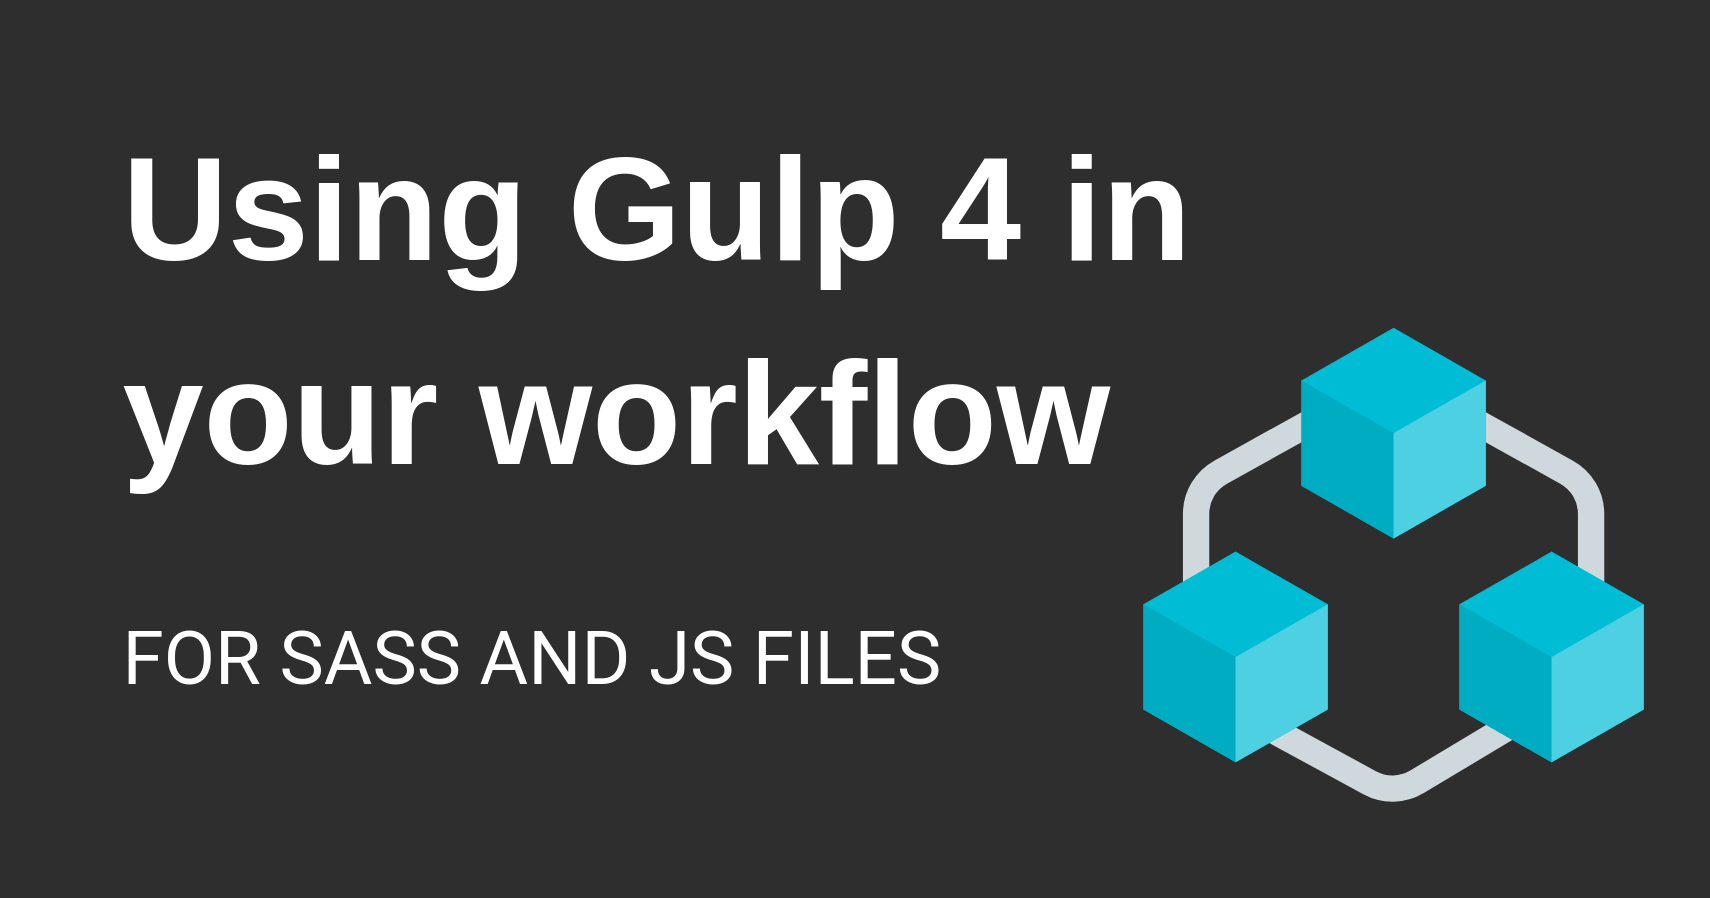 Using Gulp 4 in your workflow for Sass and JS files